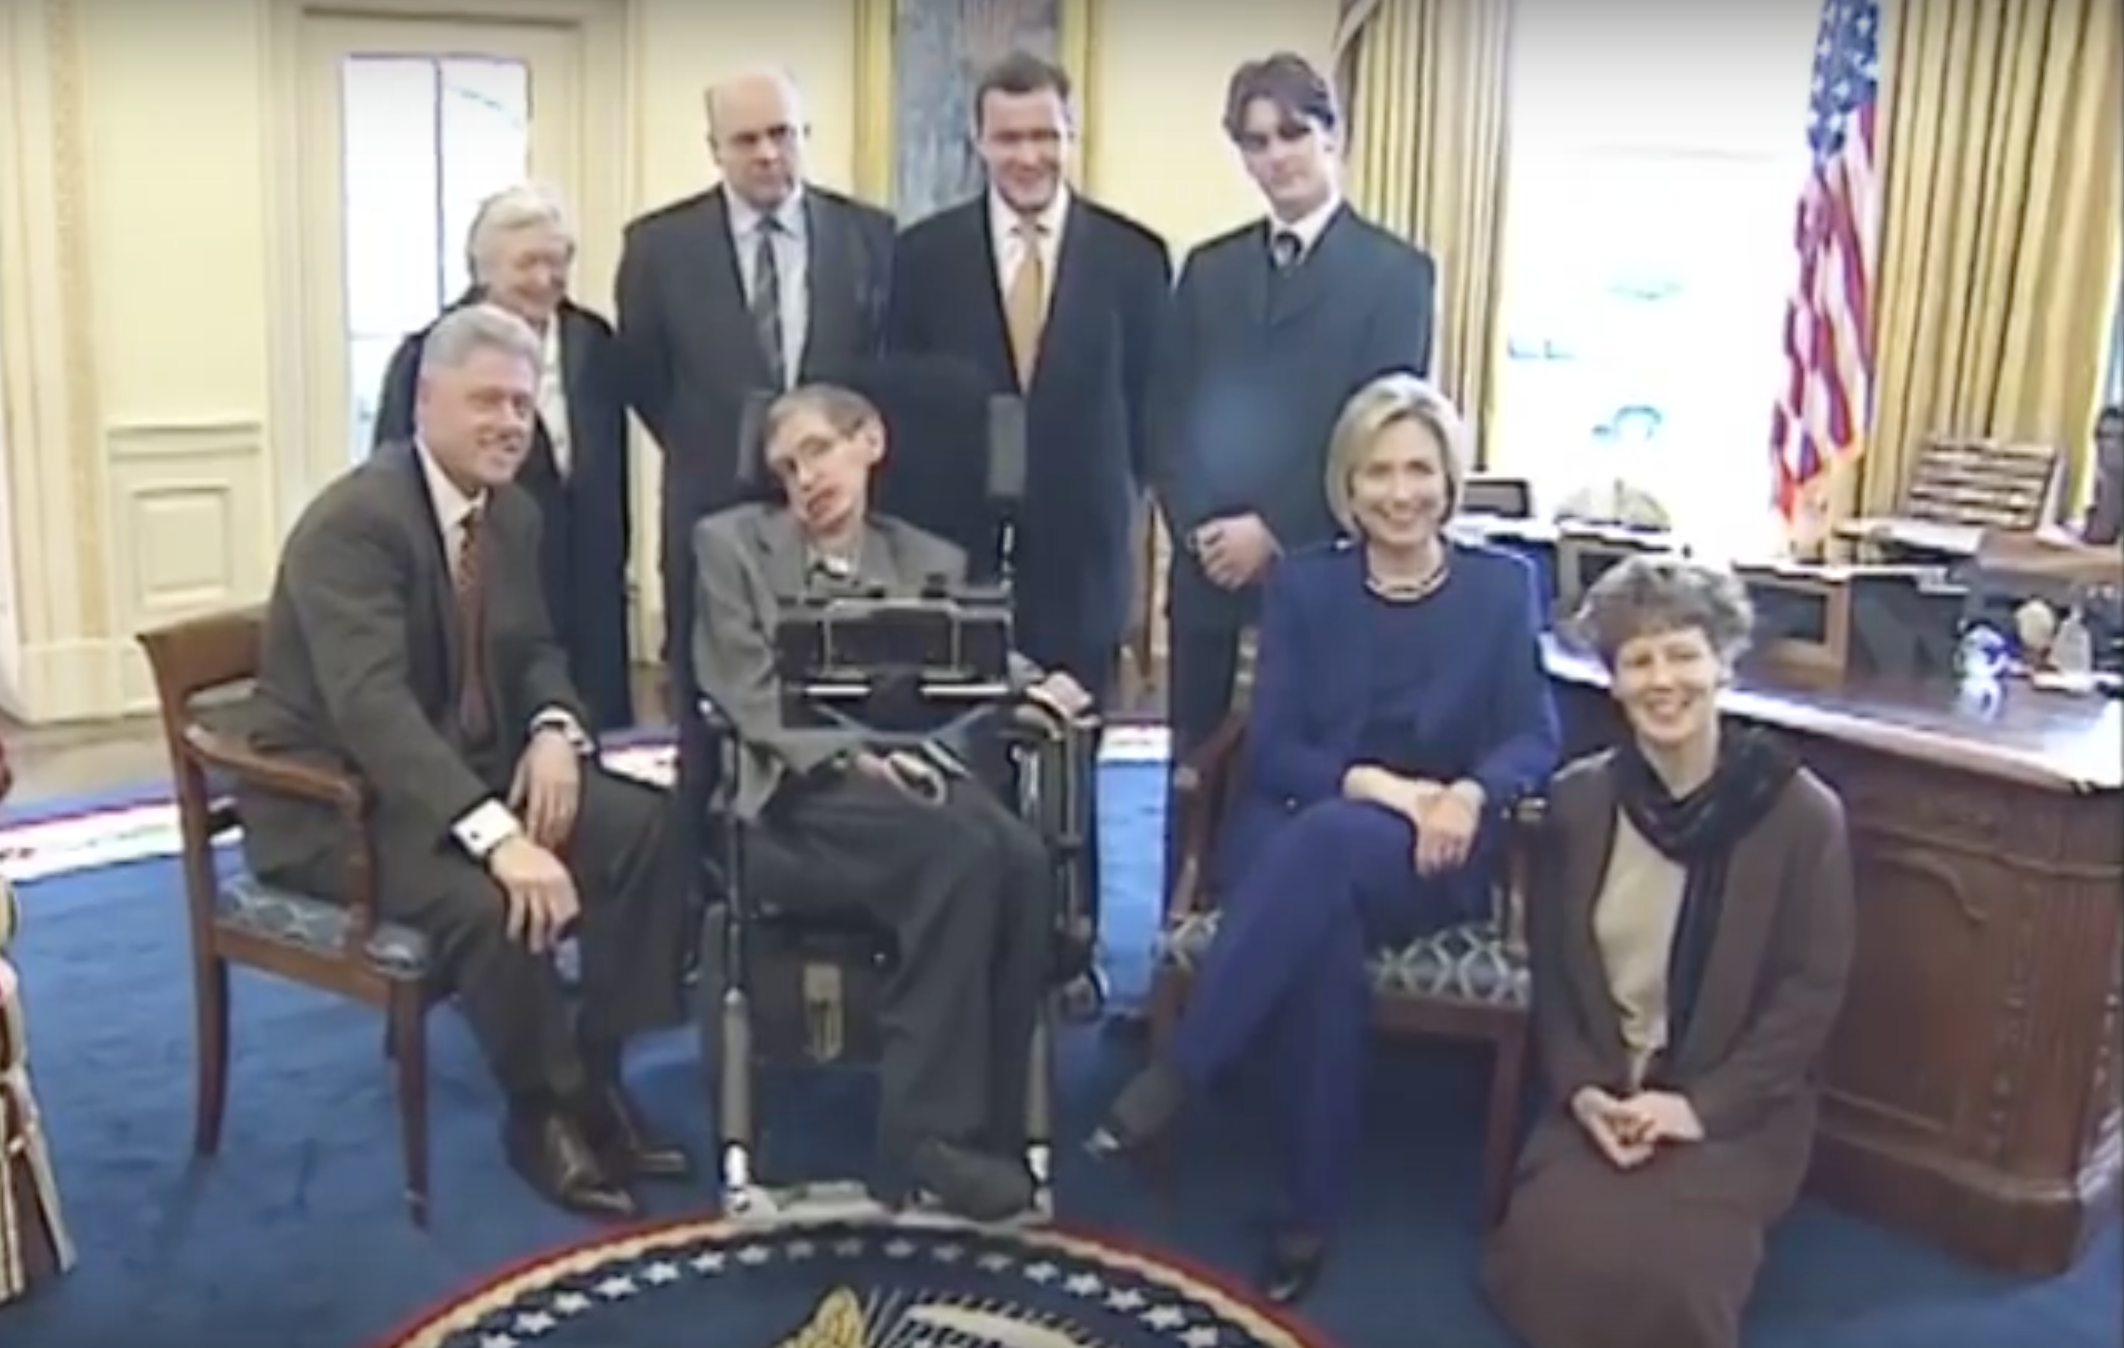 File Stephen Hawking And Clintons In White House March 5